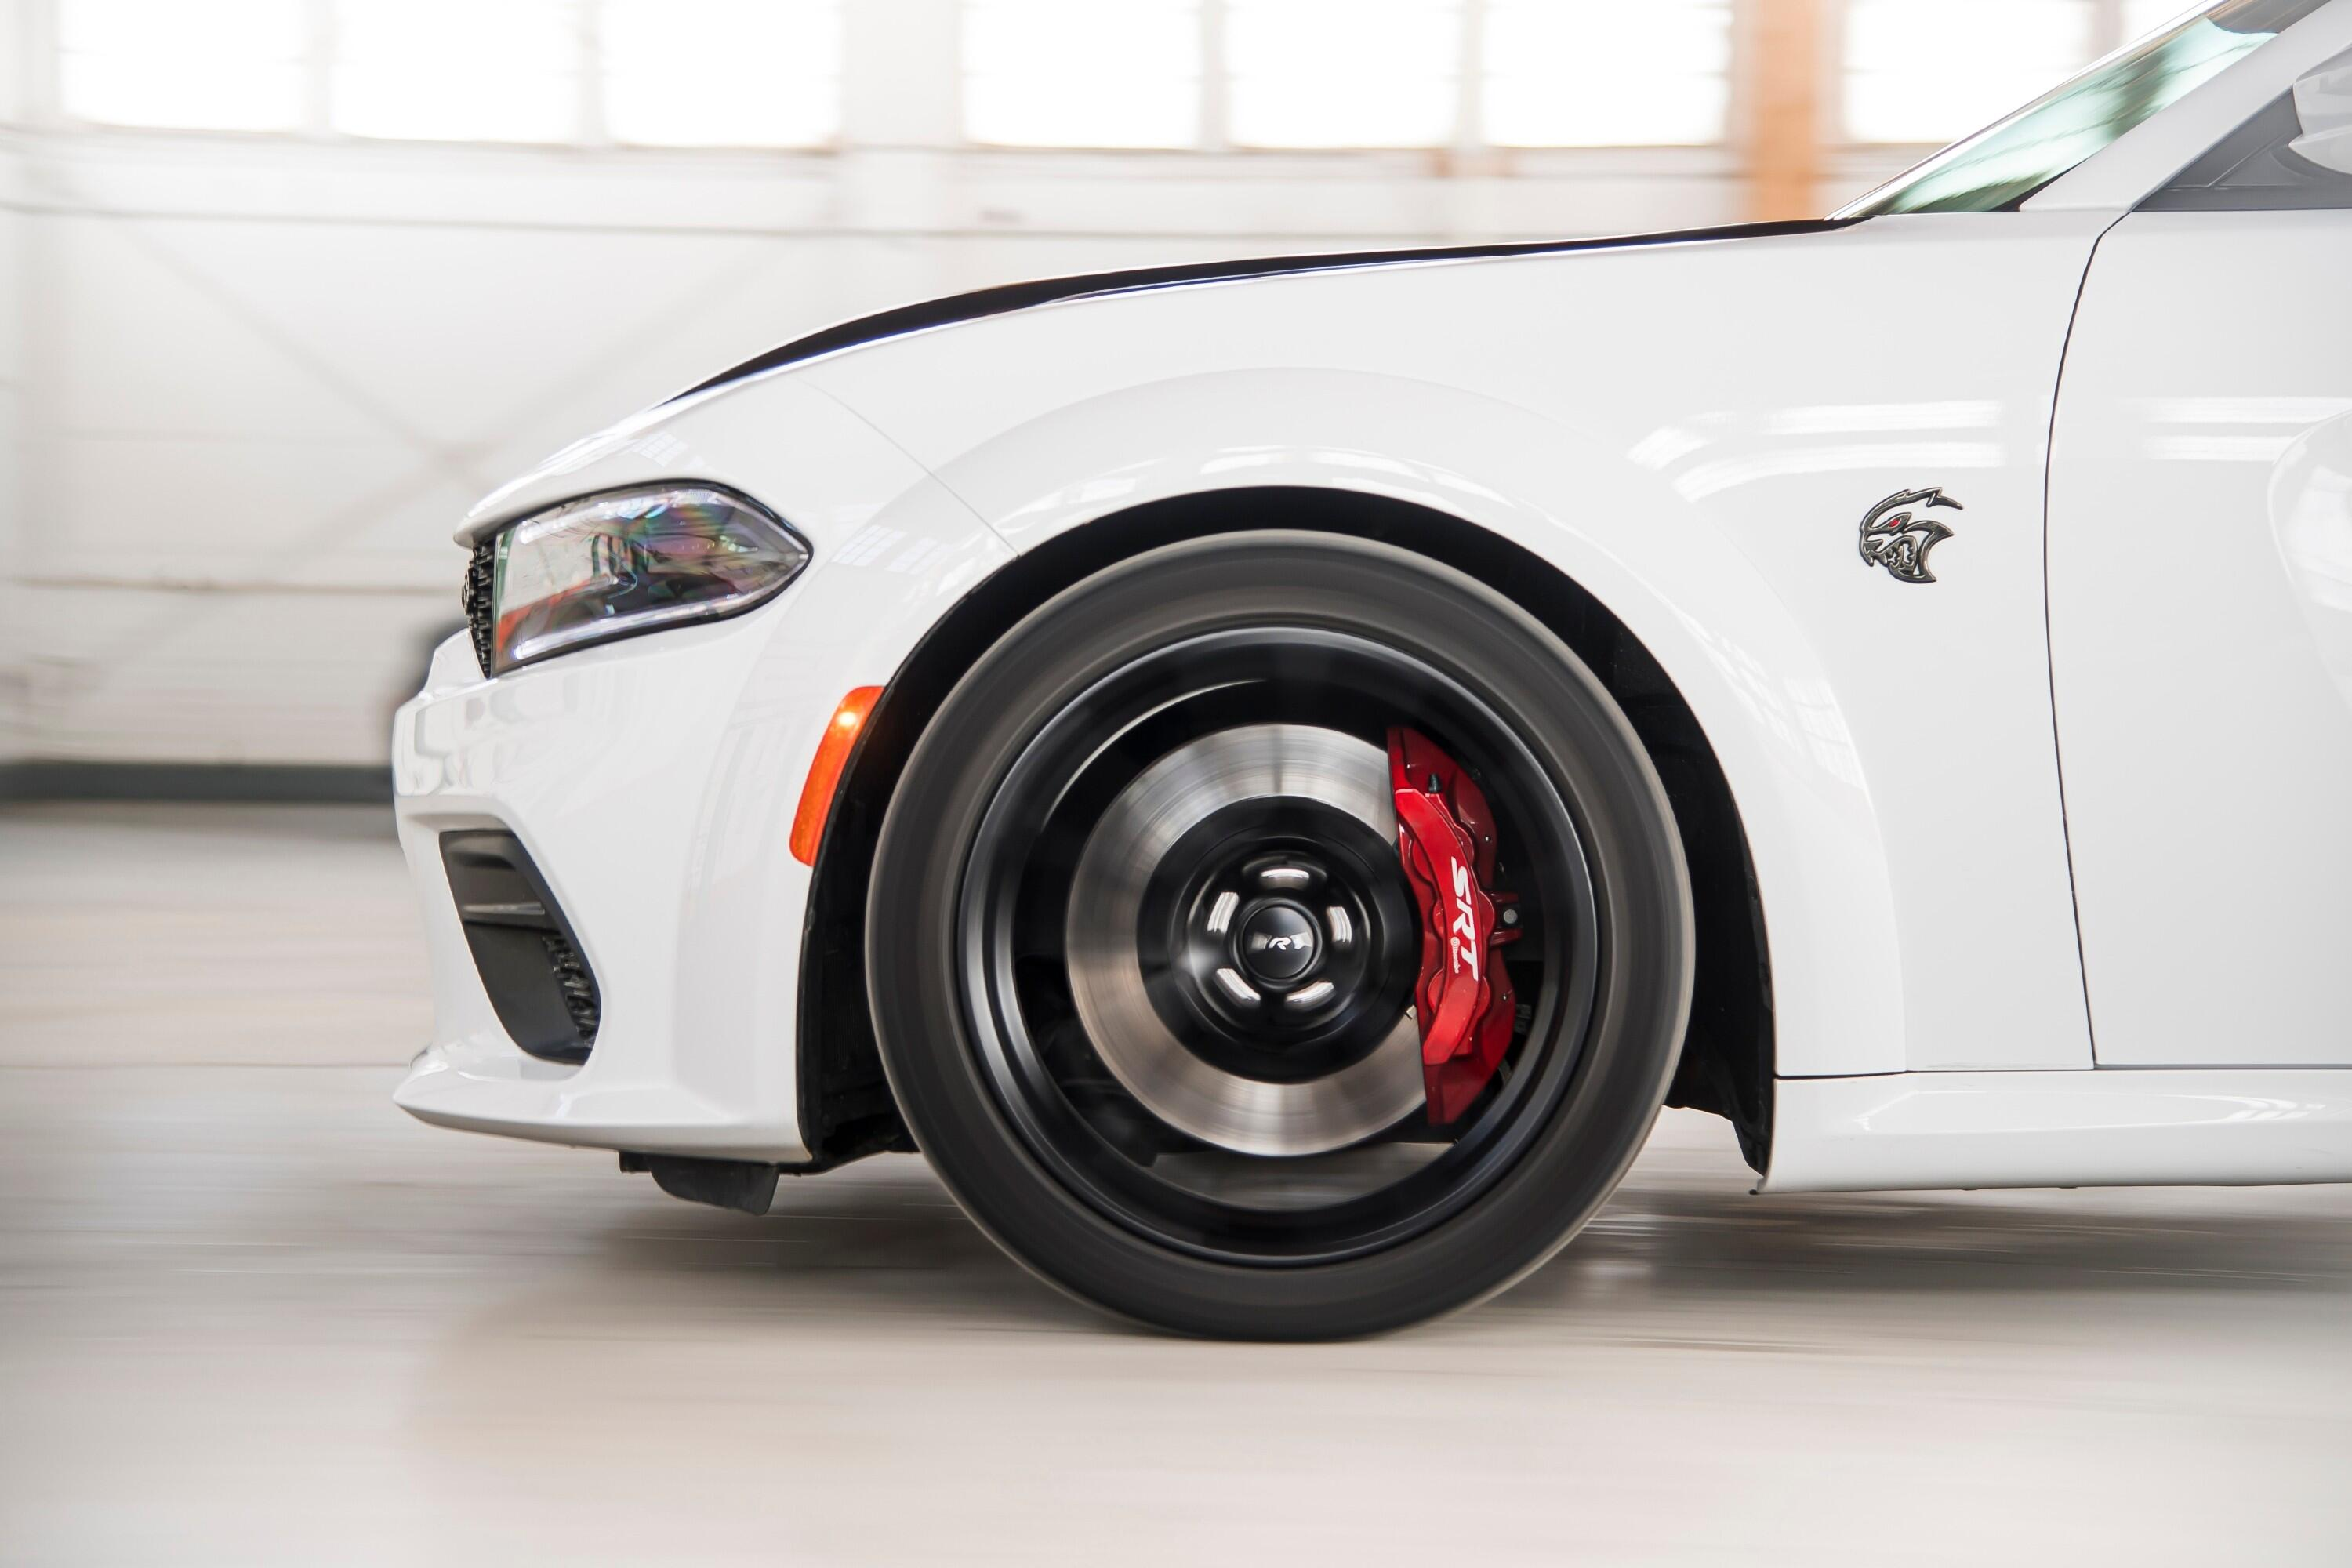 2021-dodge-charger-redeye-032